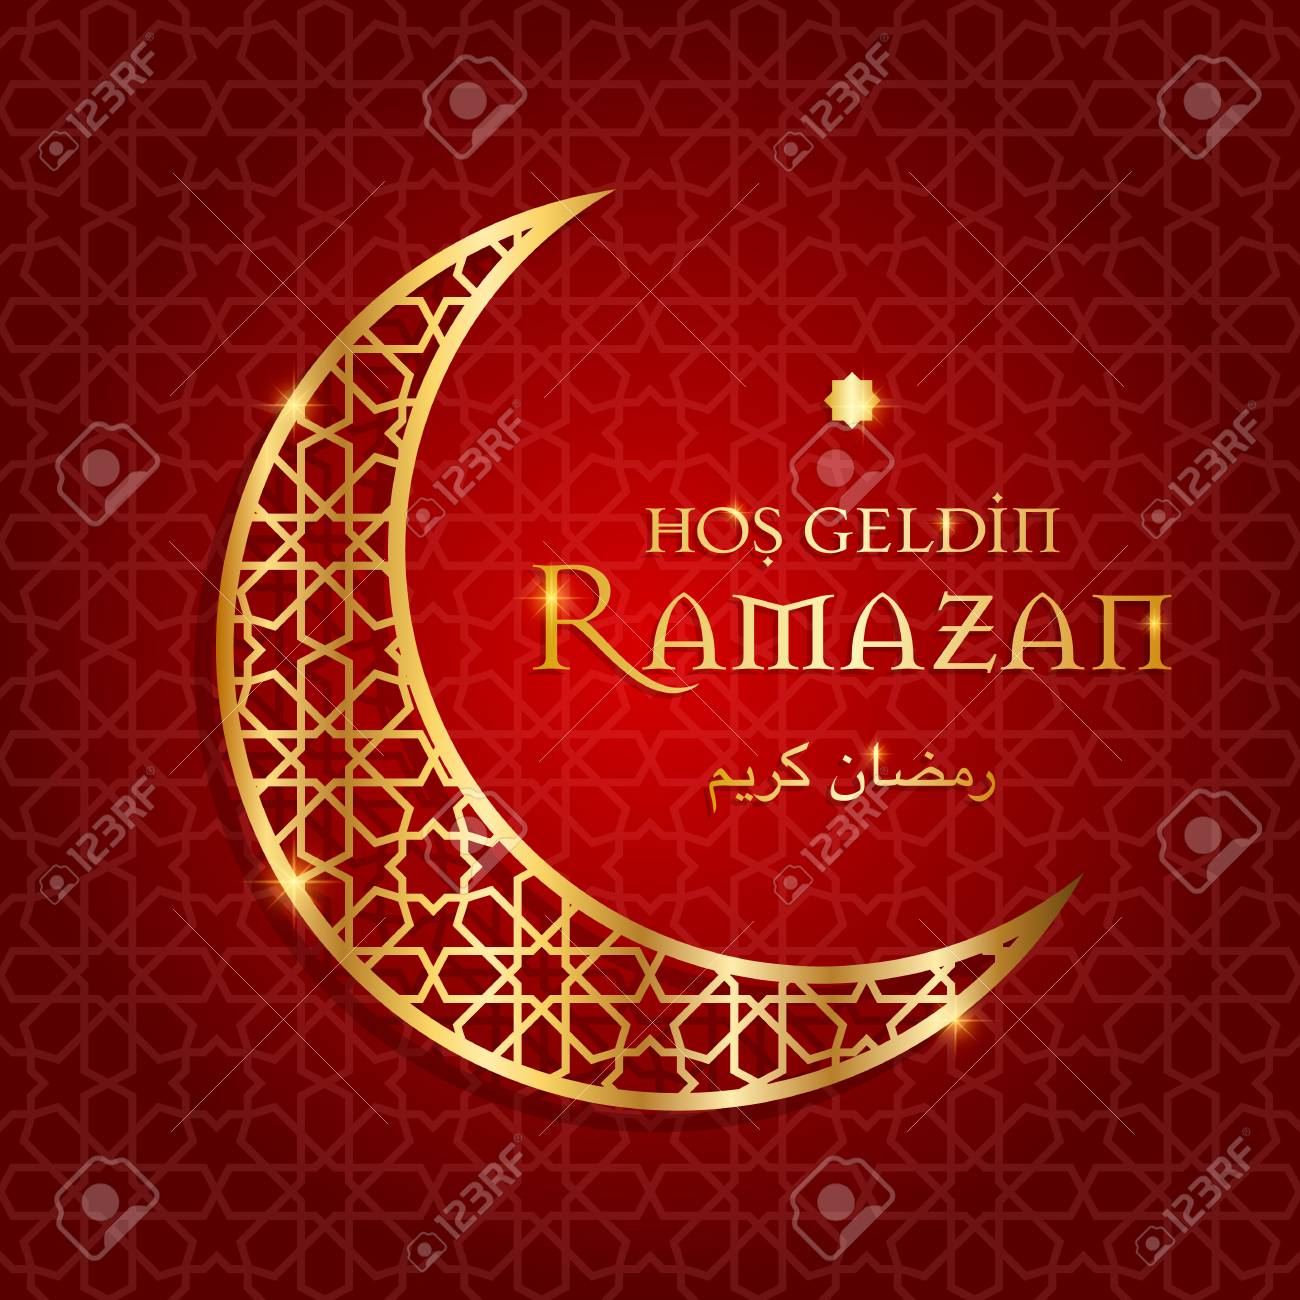 Ramadan ramadan welcome ramadan greeting card turkish hos ramadan ramadan welcome ramadan greeting card turkish hos geldin ramazan stock m4hsunfo